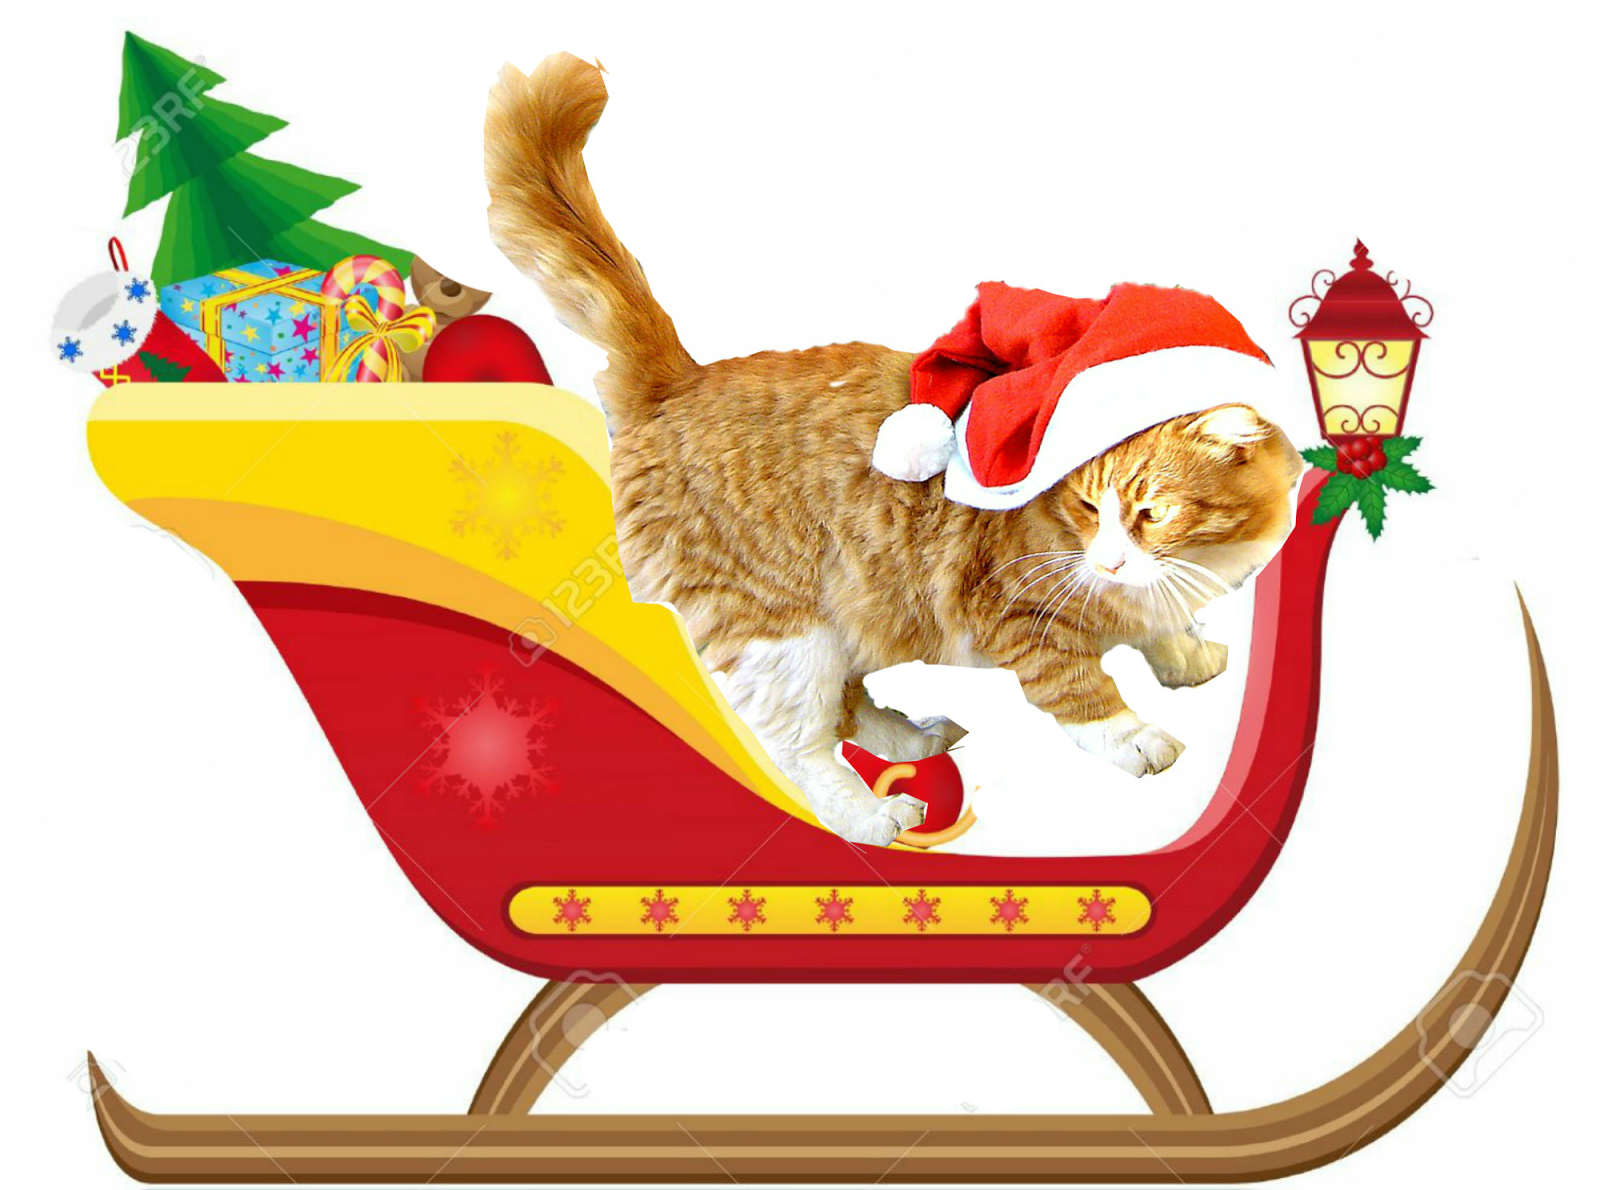 Cretan Cat Steals Santa's Hat!